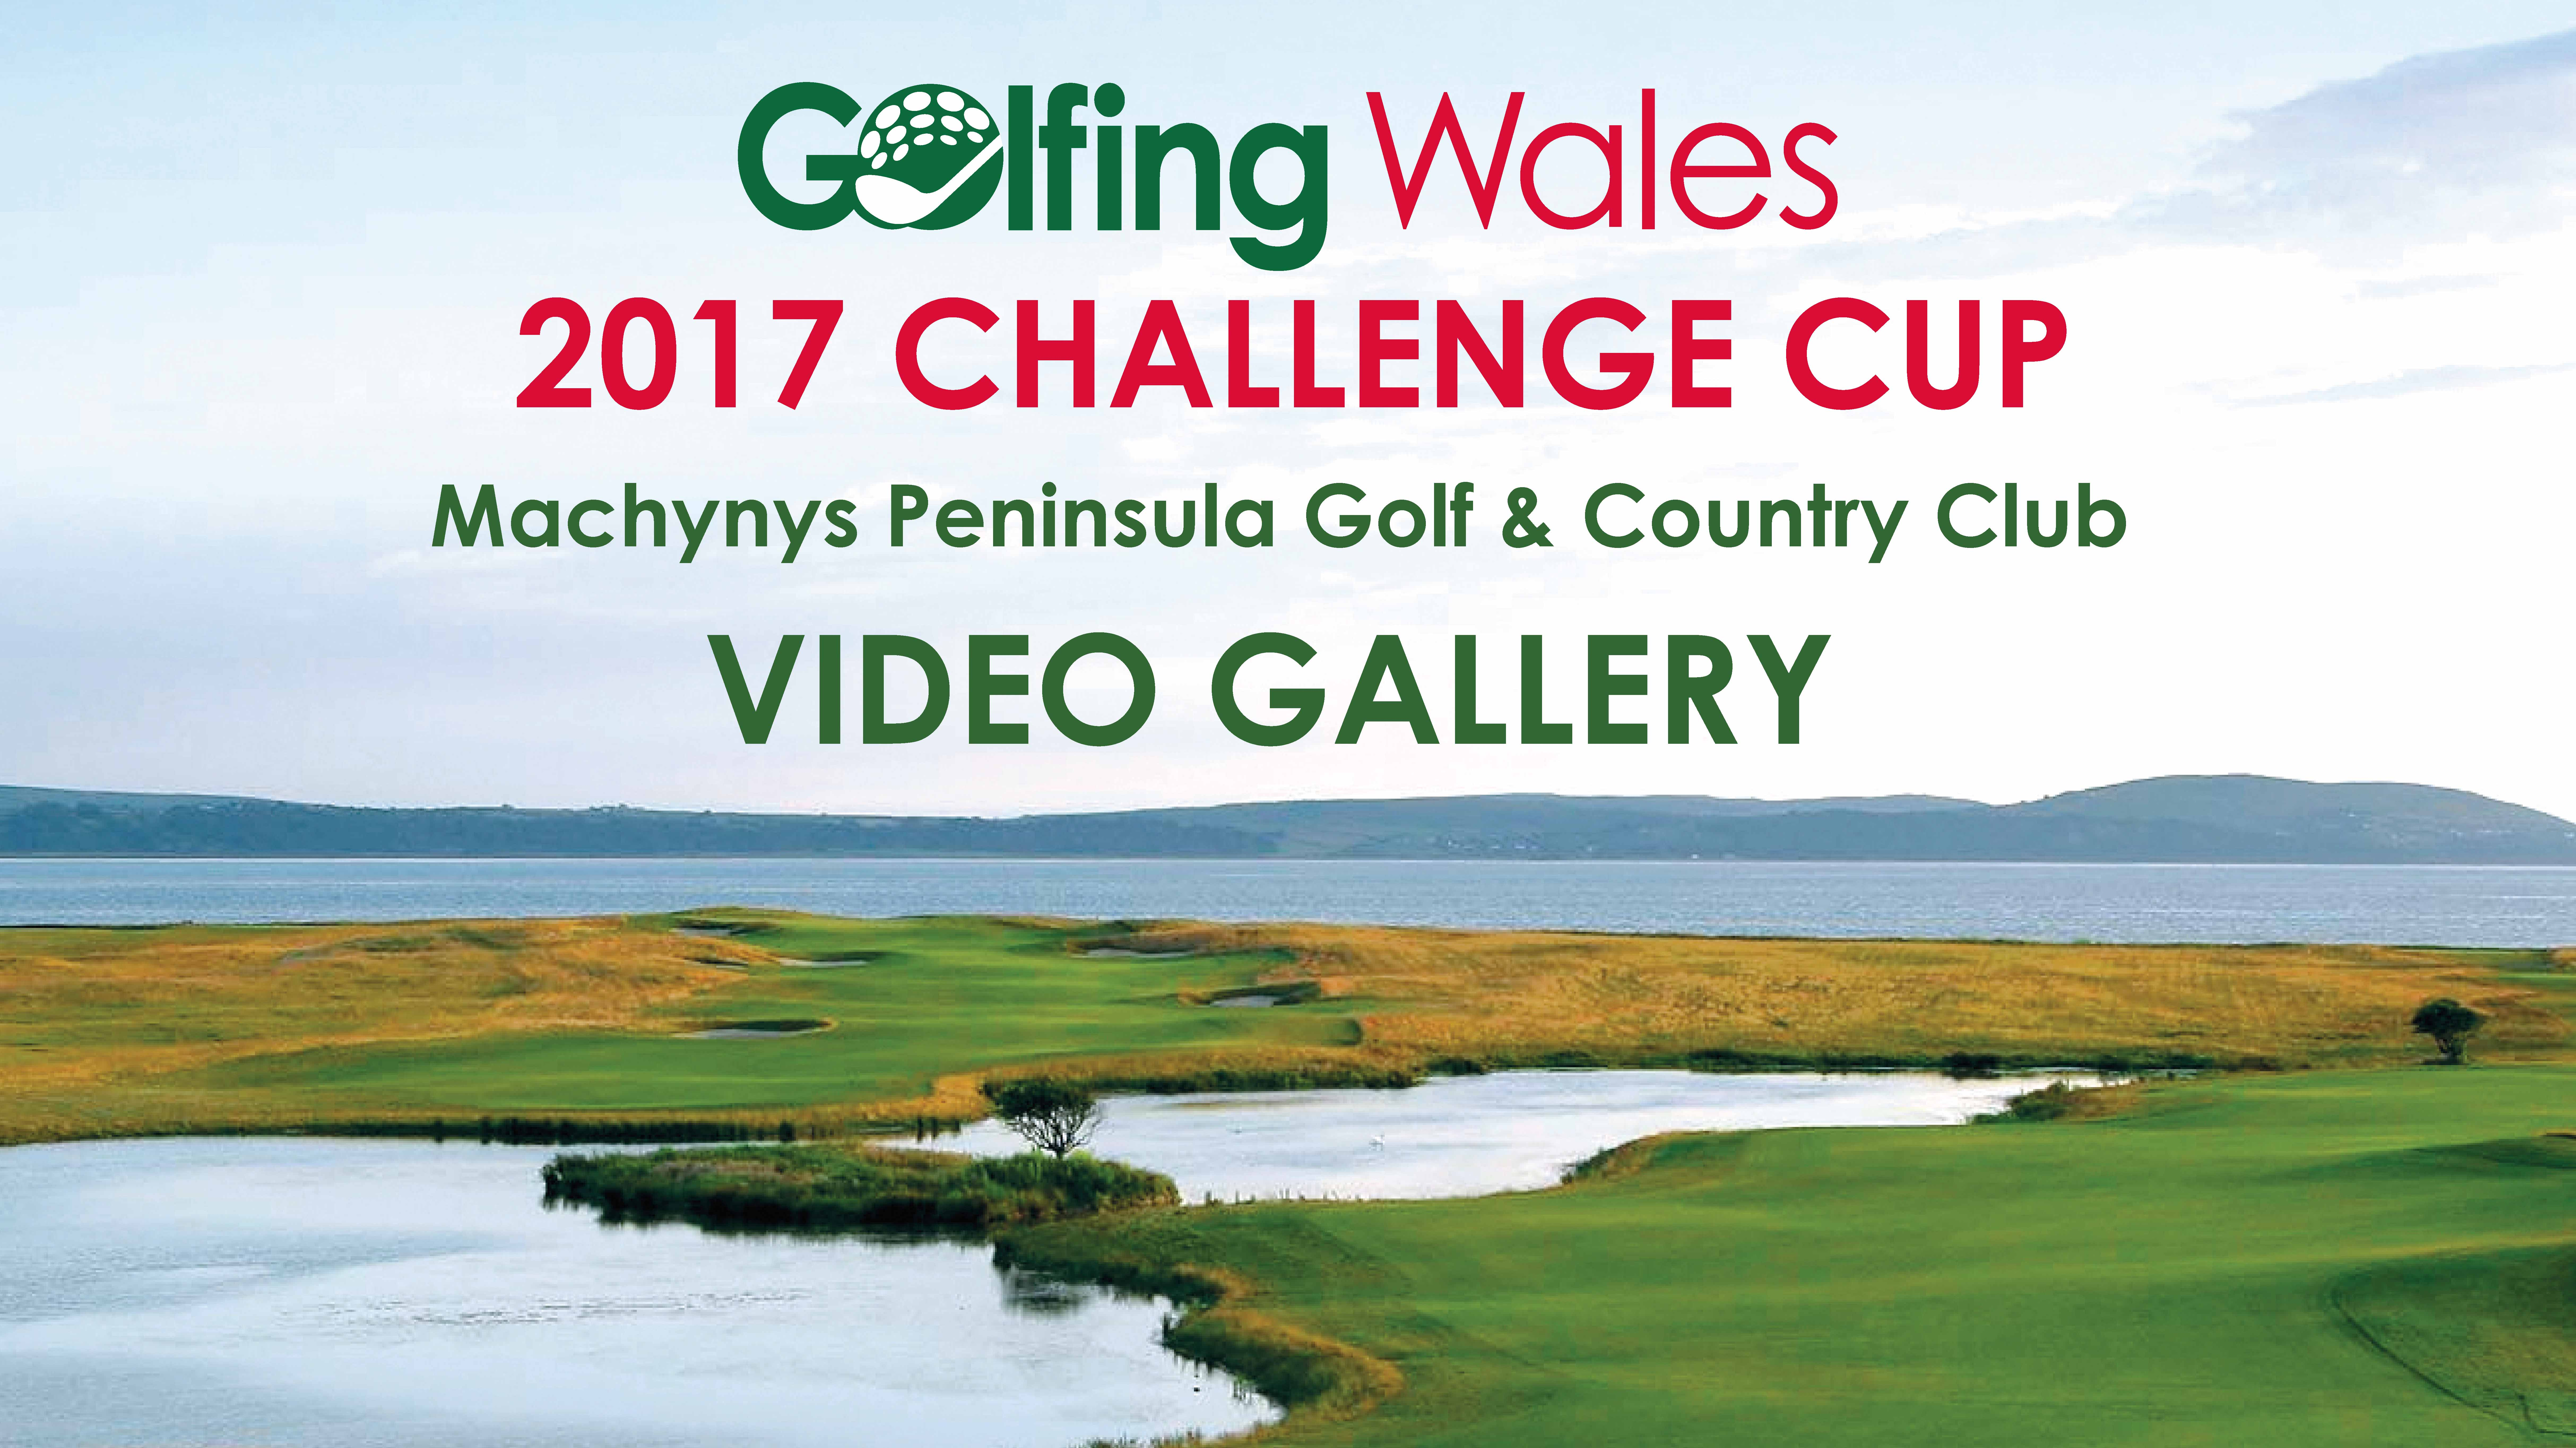 2017 Golfing Wales Challenge Cup - Video Gallery - COMING SOON